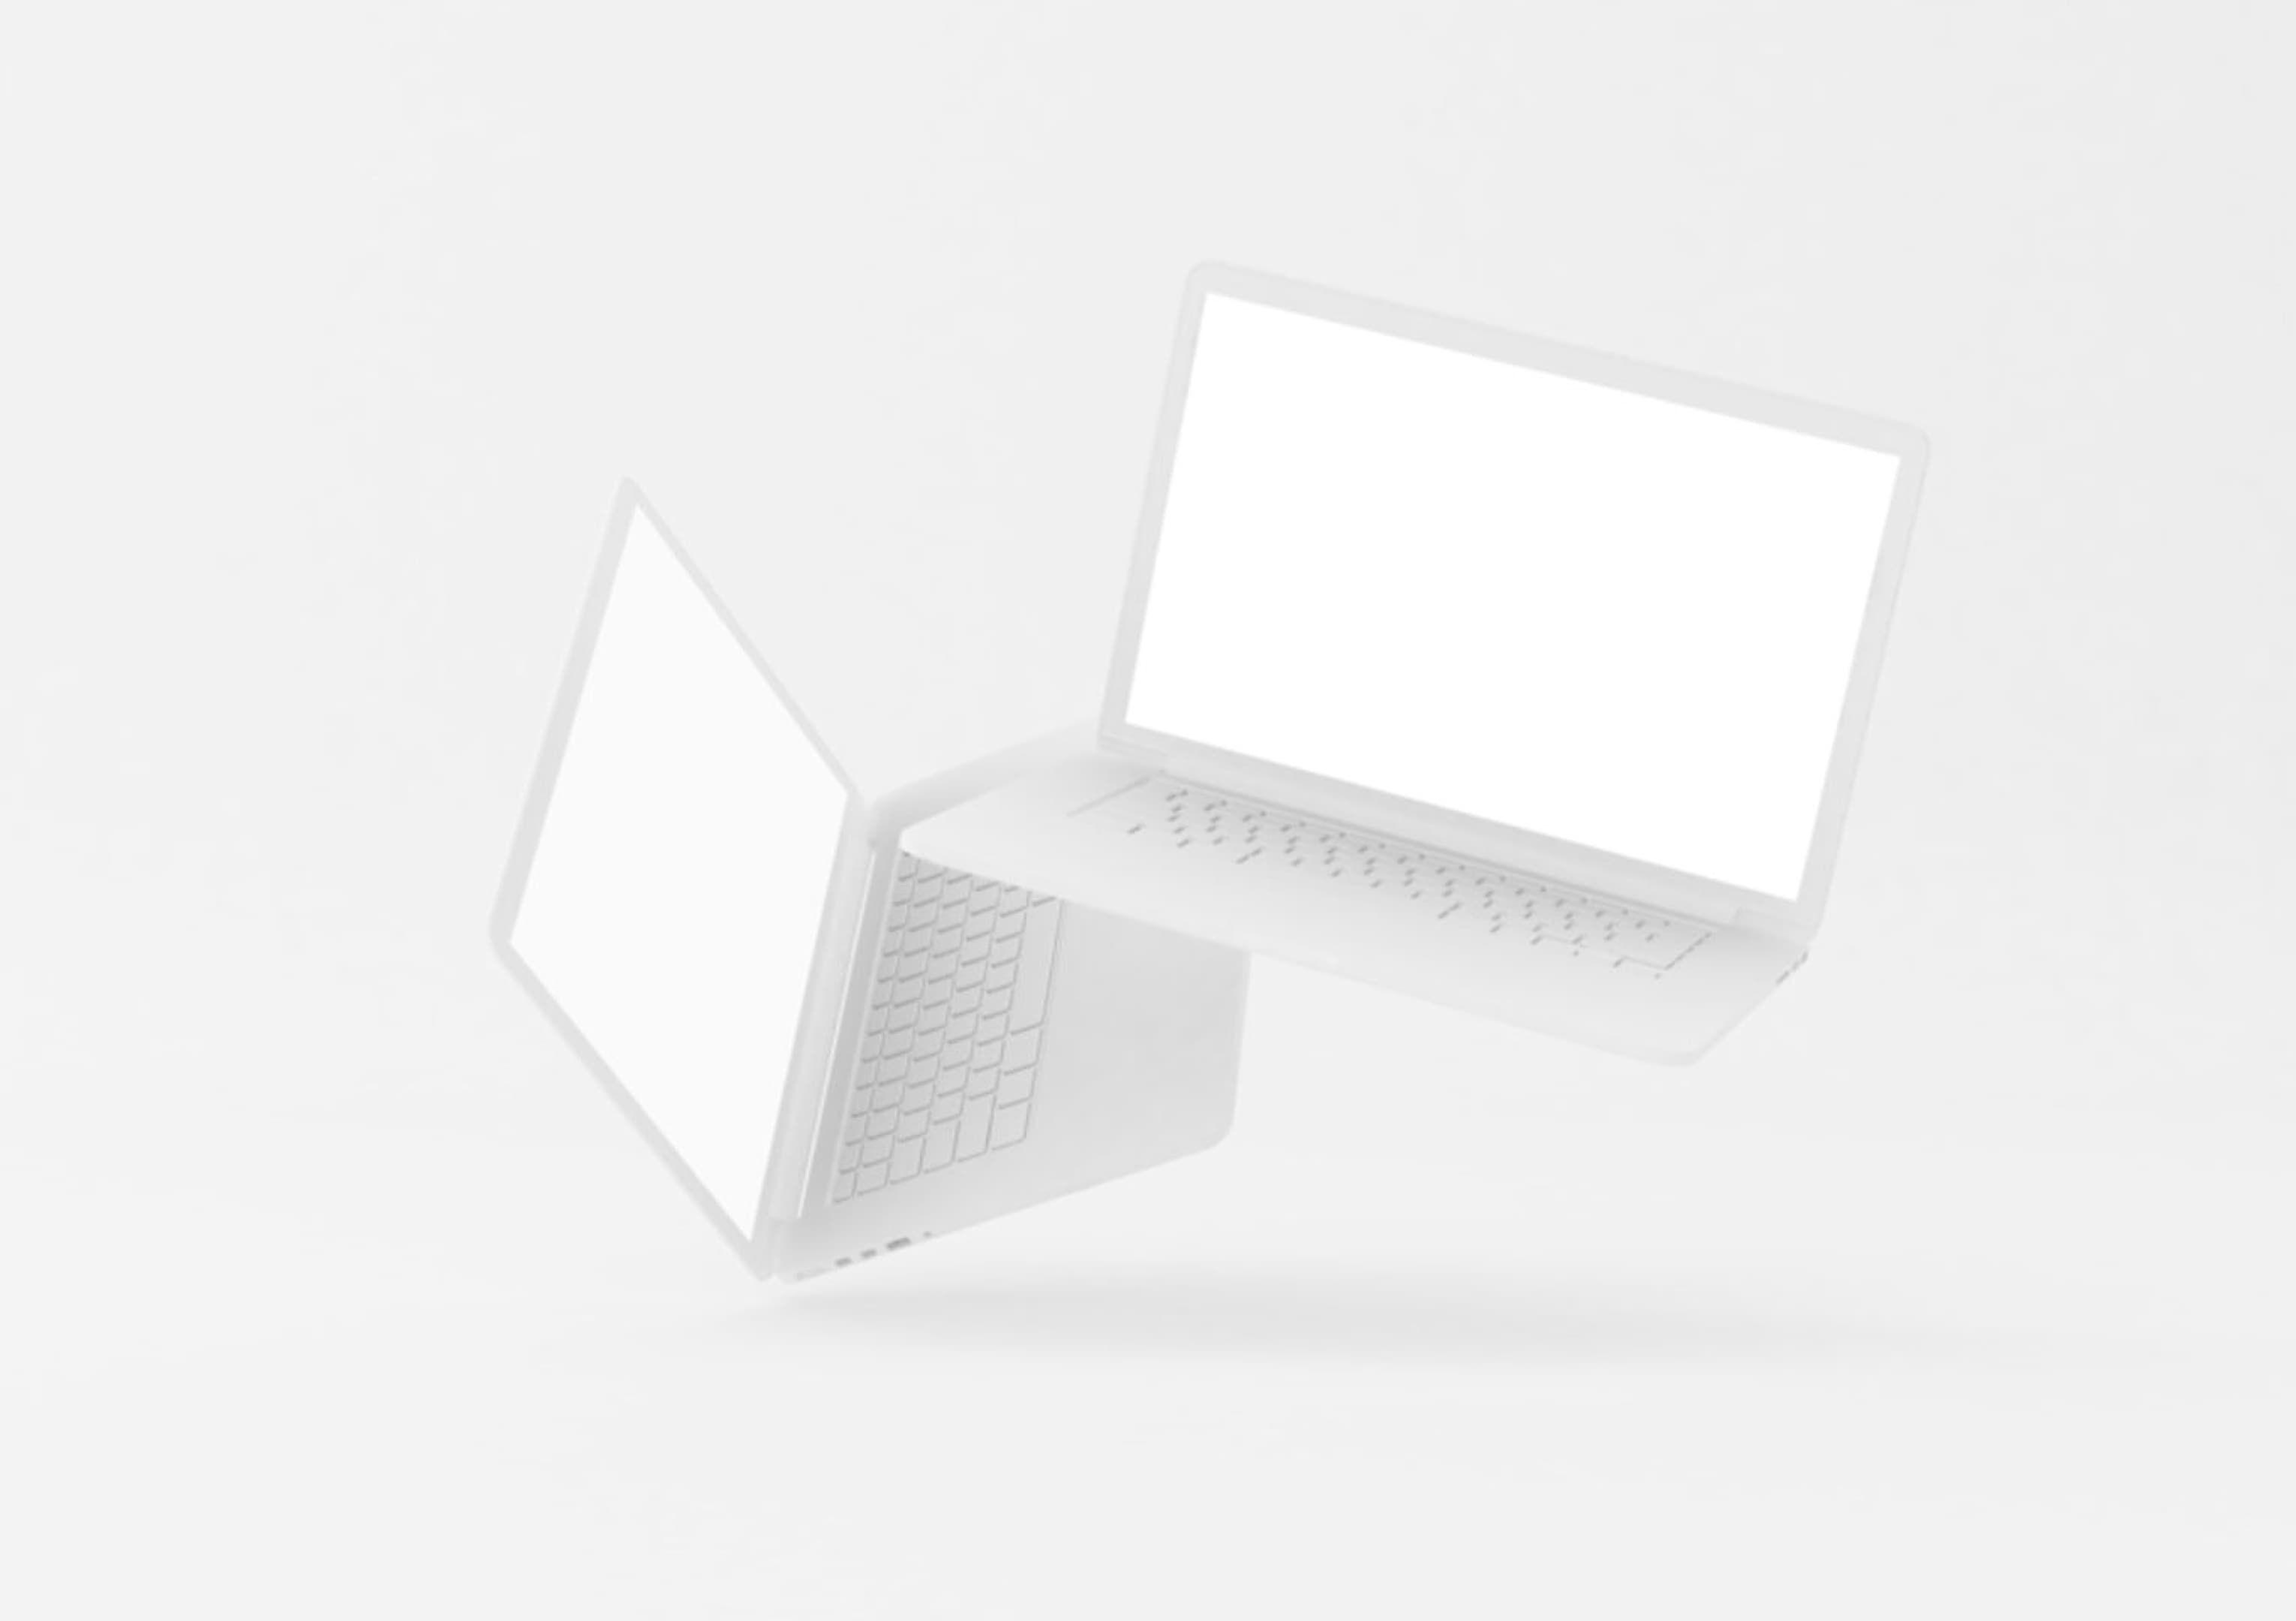 Floating Clay MacBook Pro Mockup by Malli Graphics